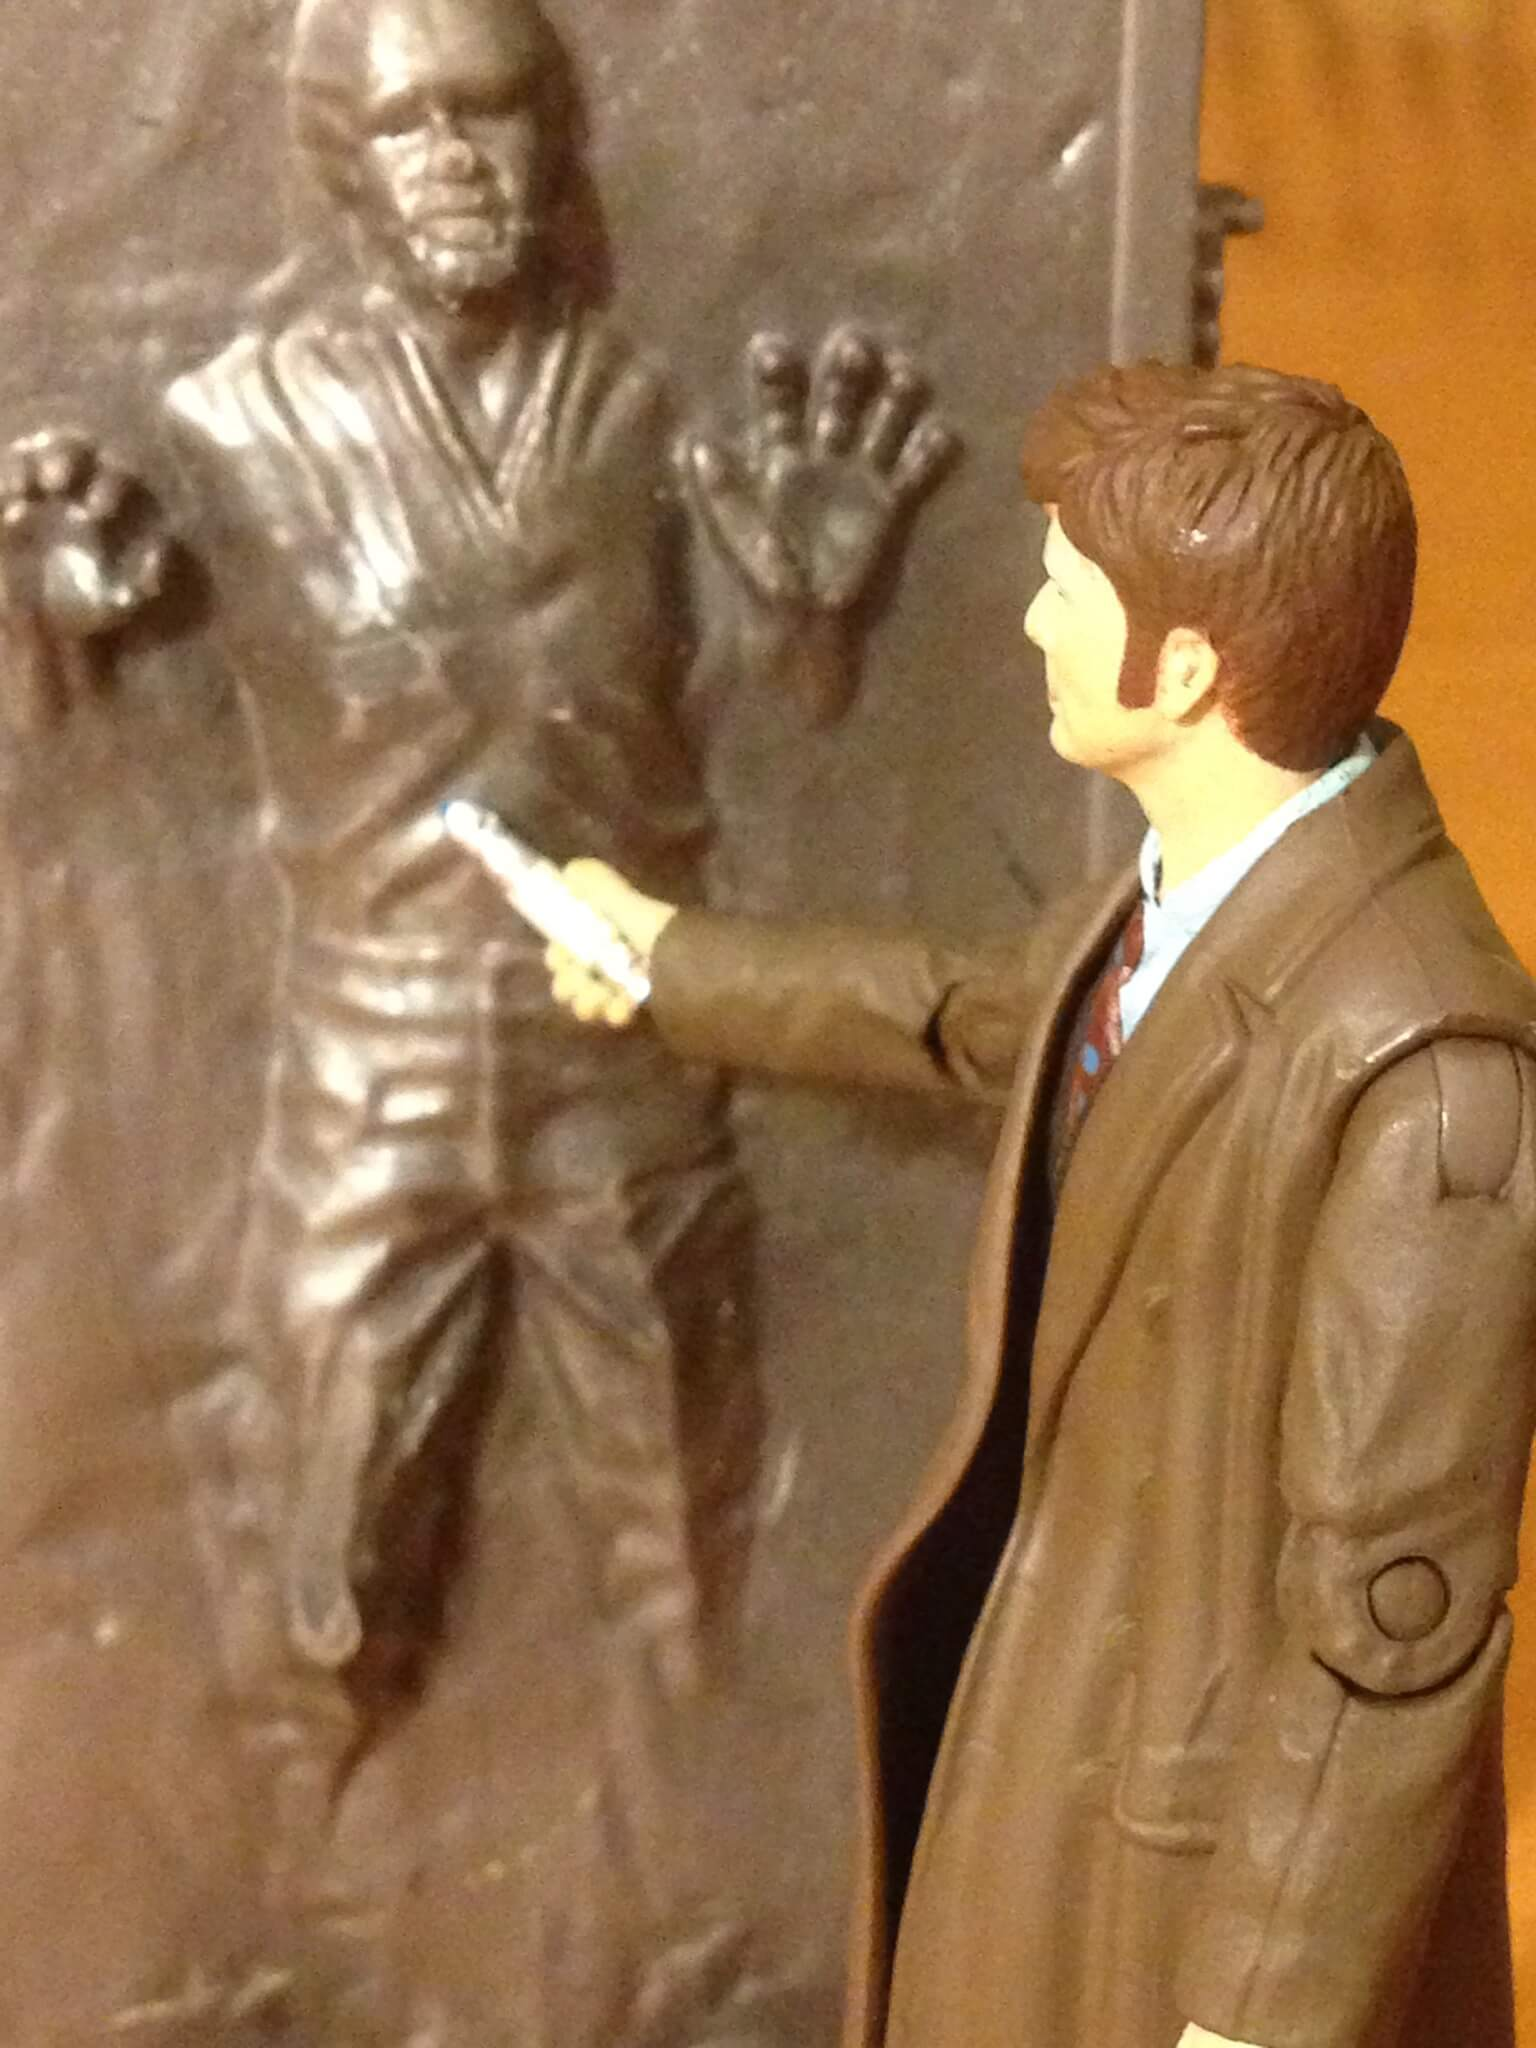 The Doctor finds Han Solo frozen in Carbonite